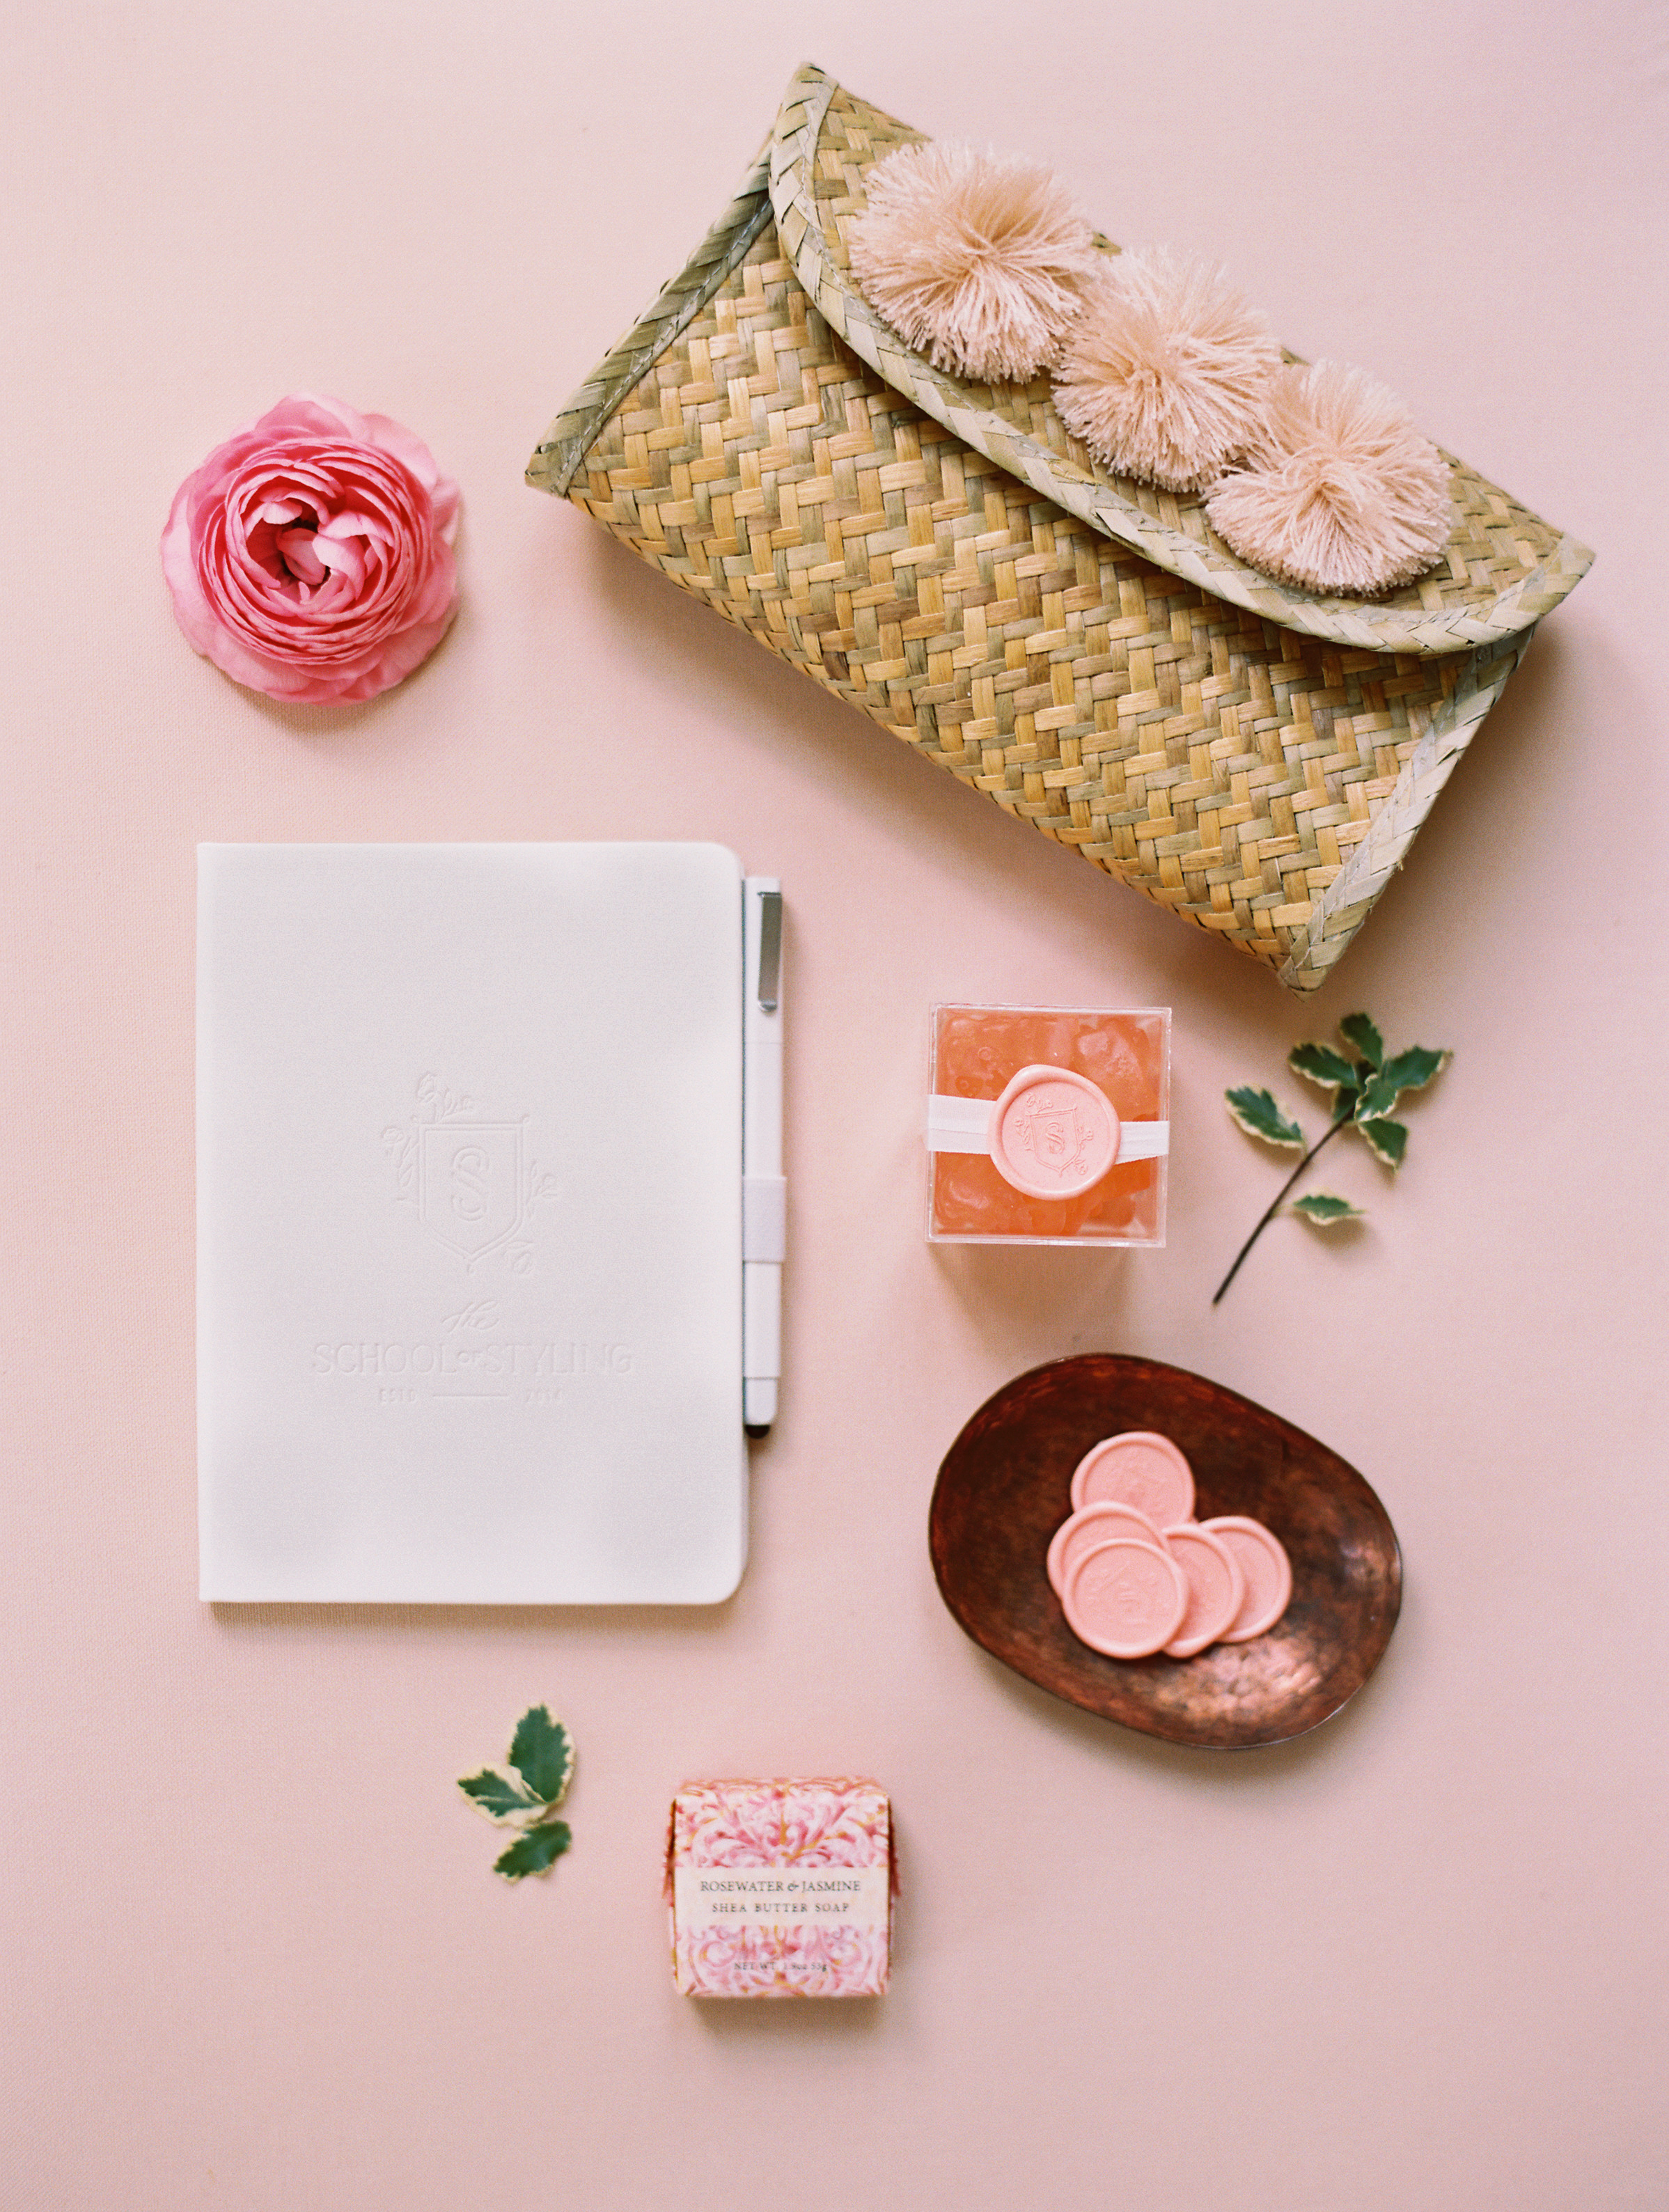 The Xinh Clutch in Blush along with other goodies that the guests received at the Workshop. (resources below)